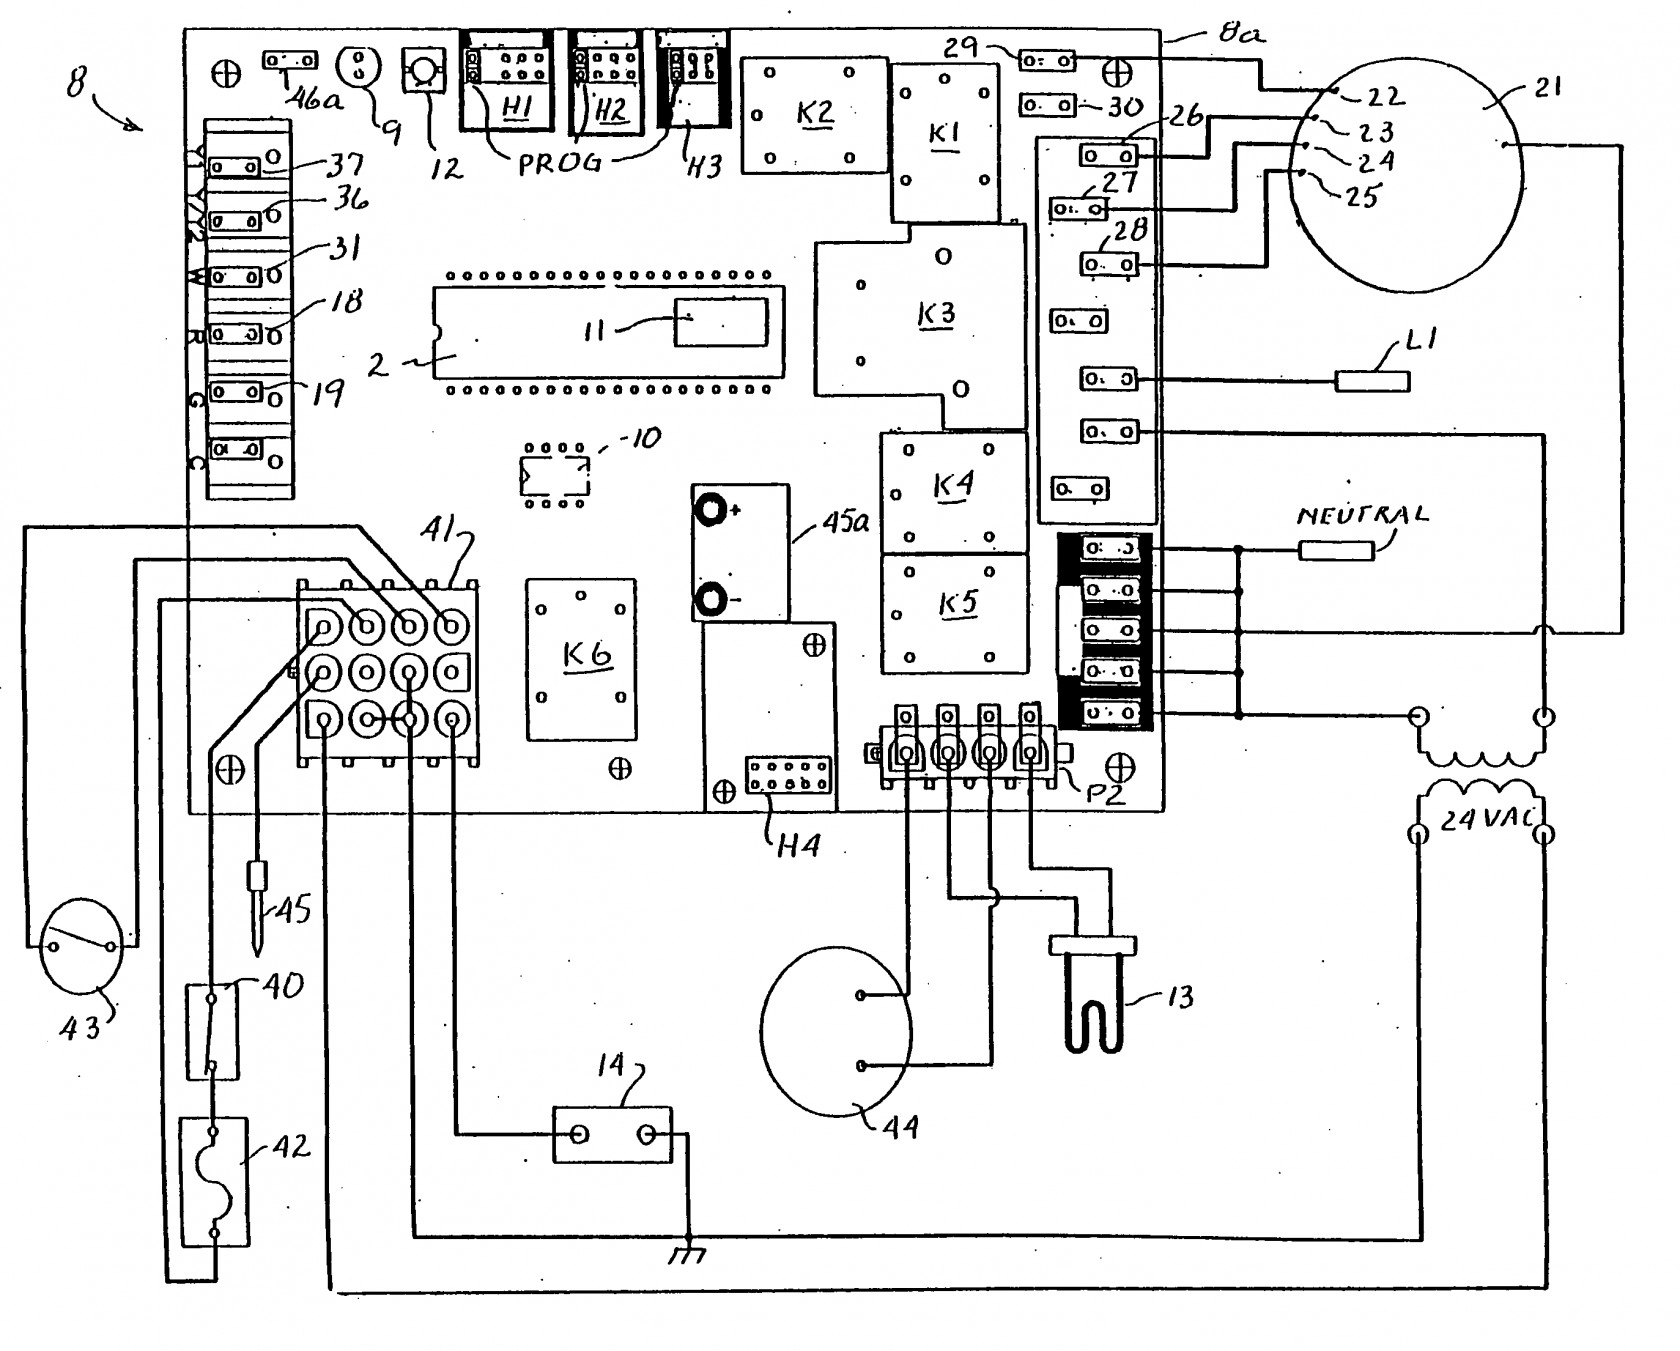 furnace control board wiring diagram Collection-Wiring Diagram for Goodman Gas Furnace New Goodman Furnace Control Board Wiring Diagram Best Hvacl Wiring 20-k